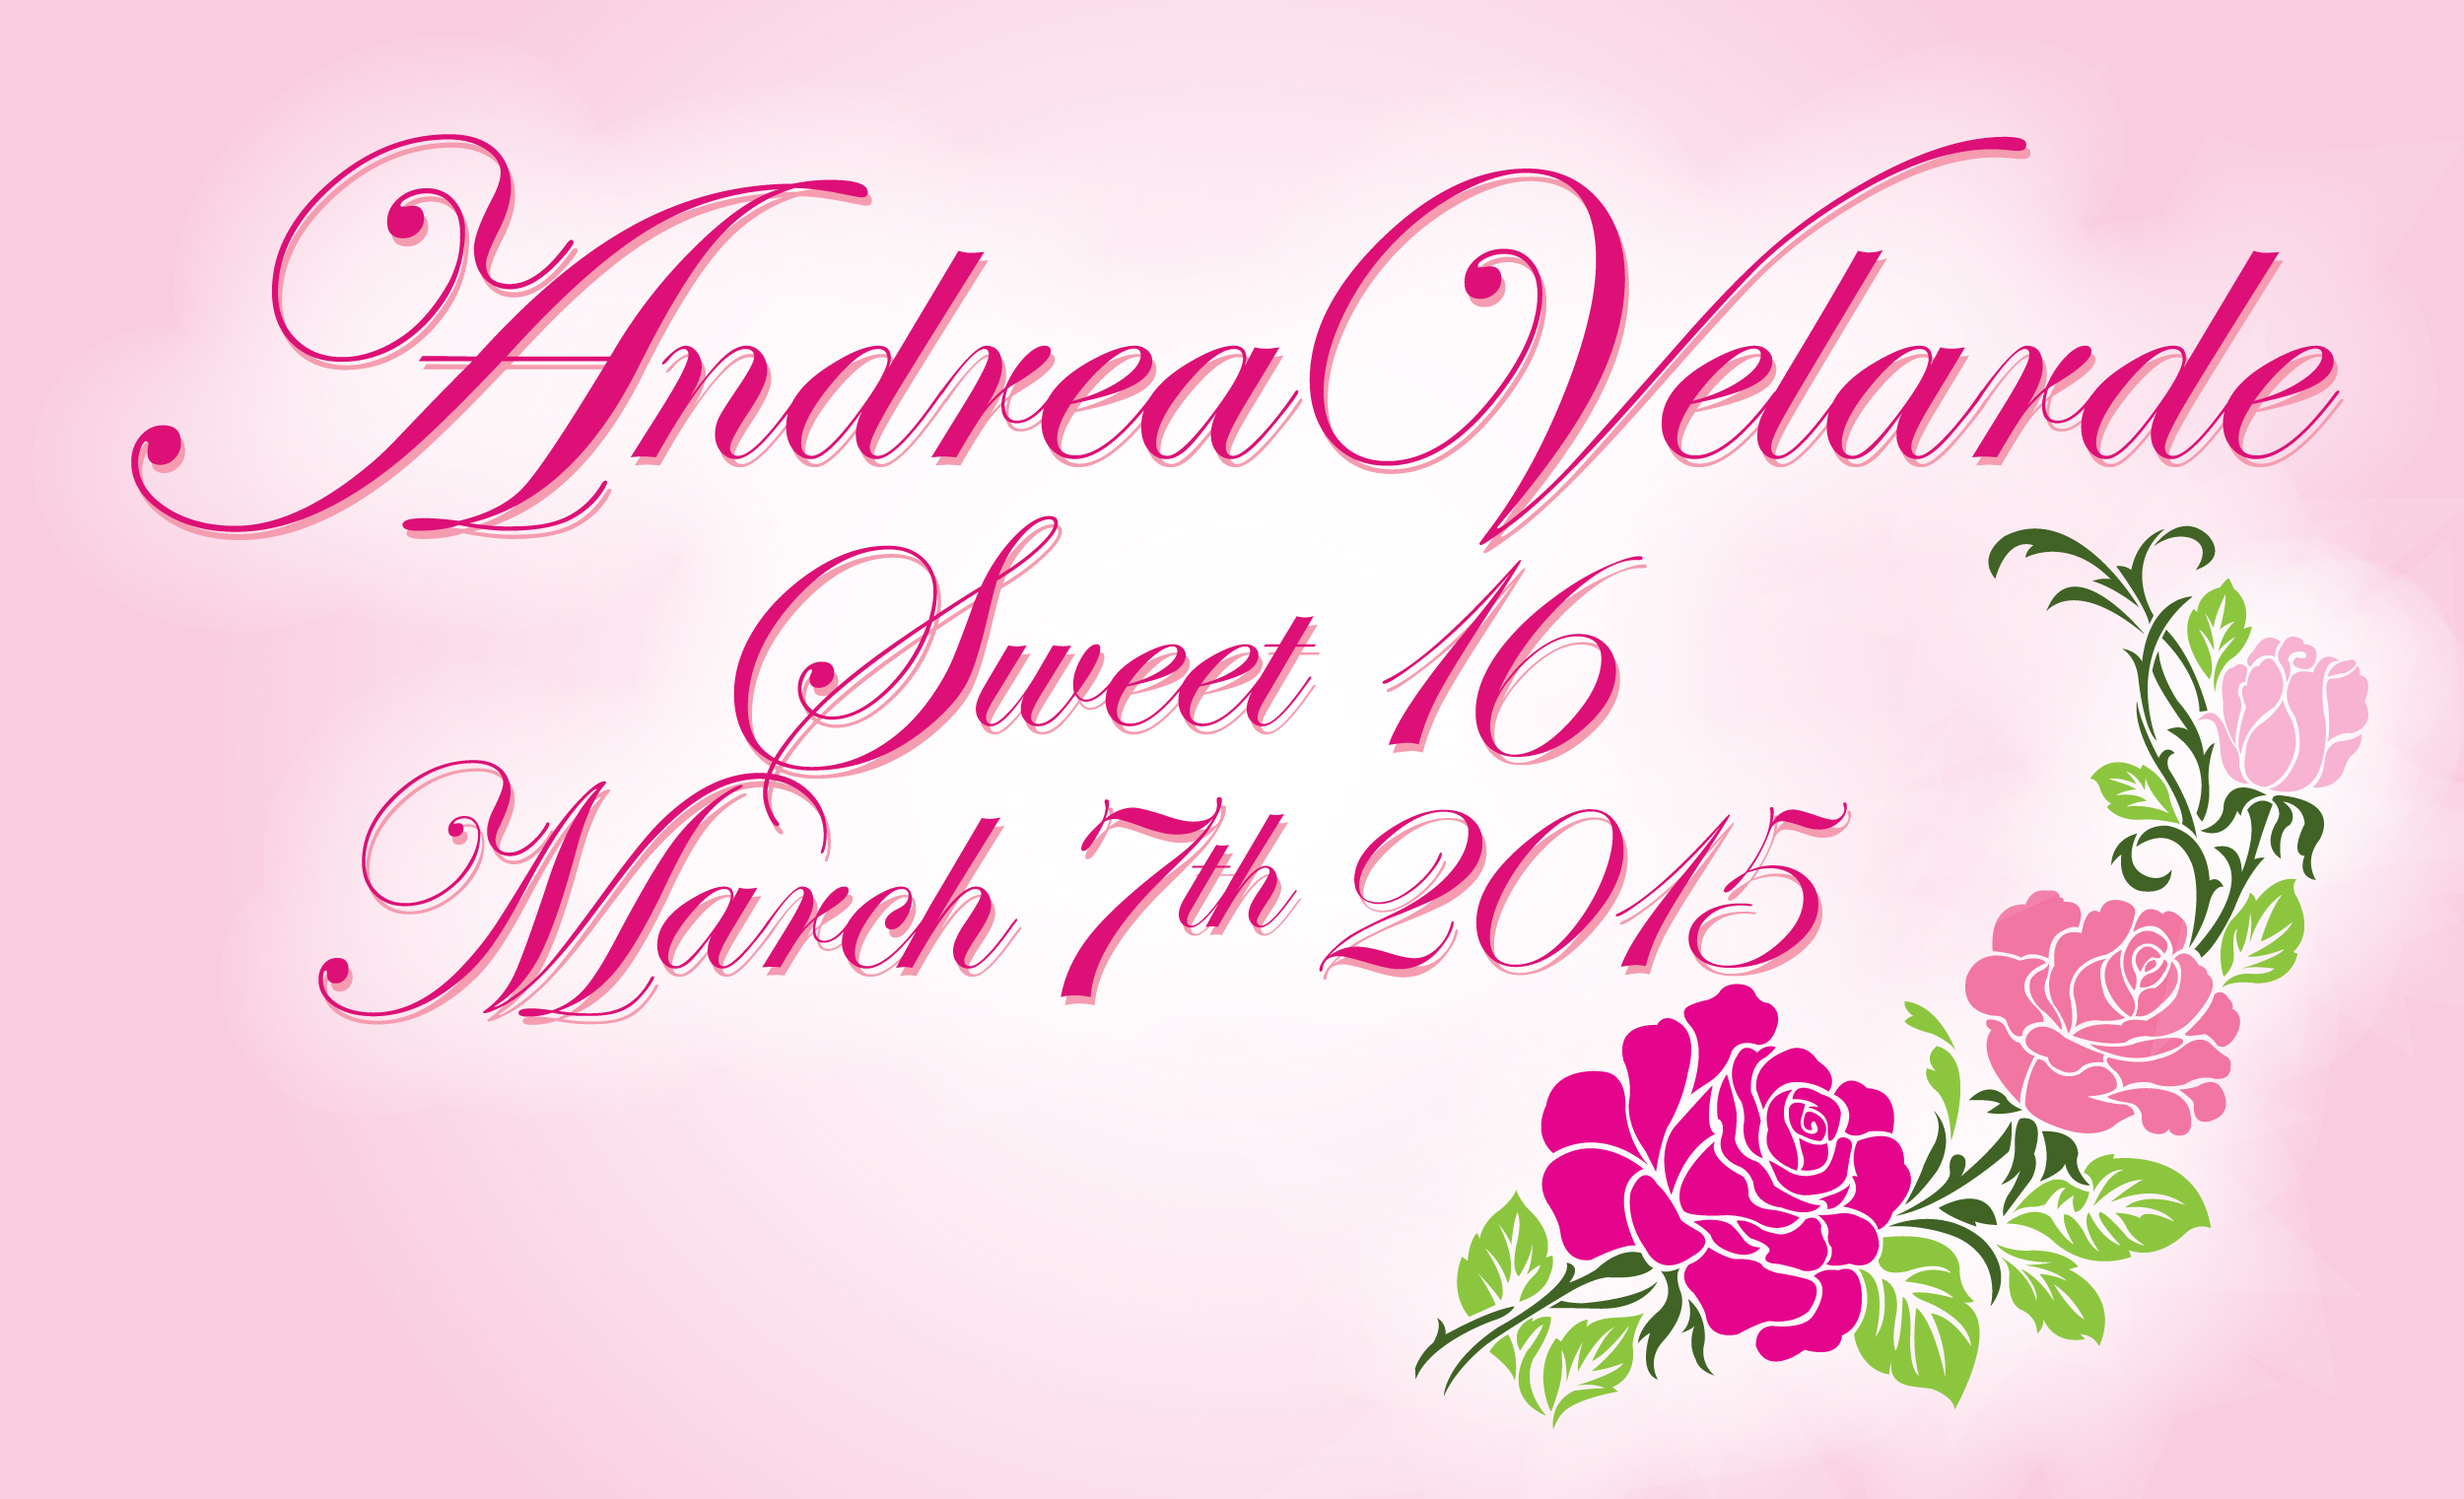 Andrea Velarde Sweet 16 - Revised Color.jpg